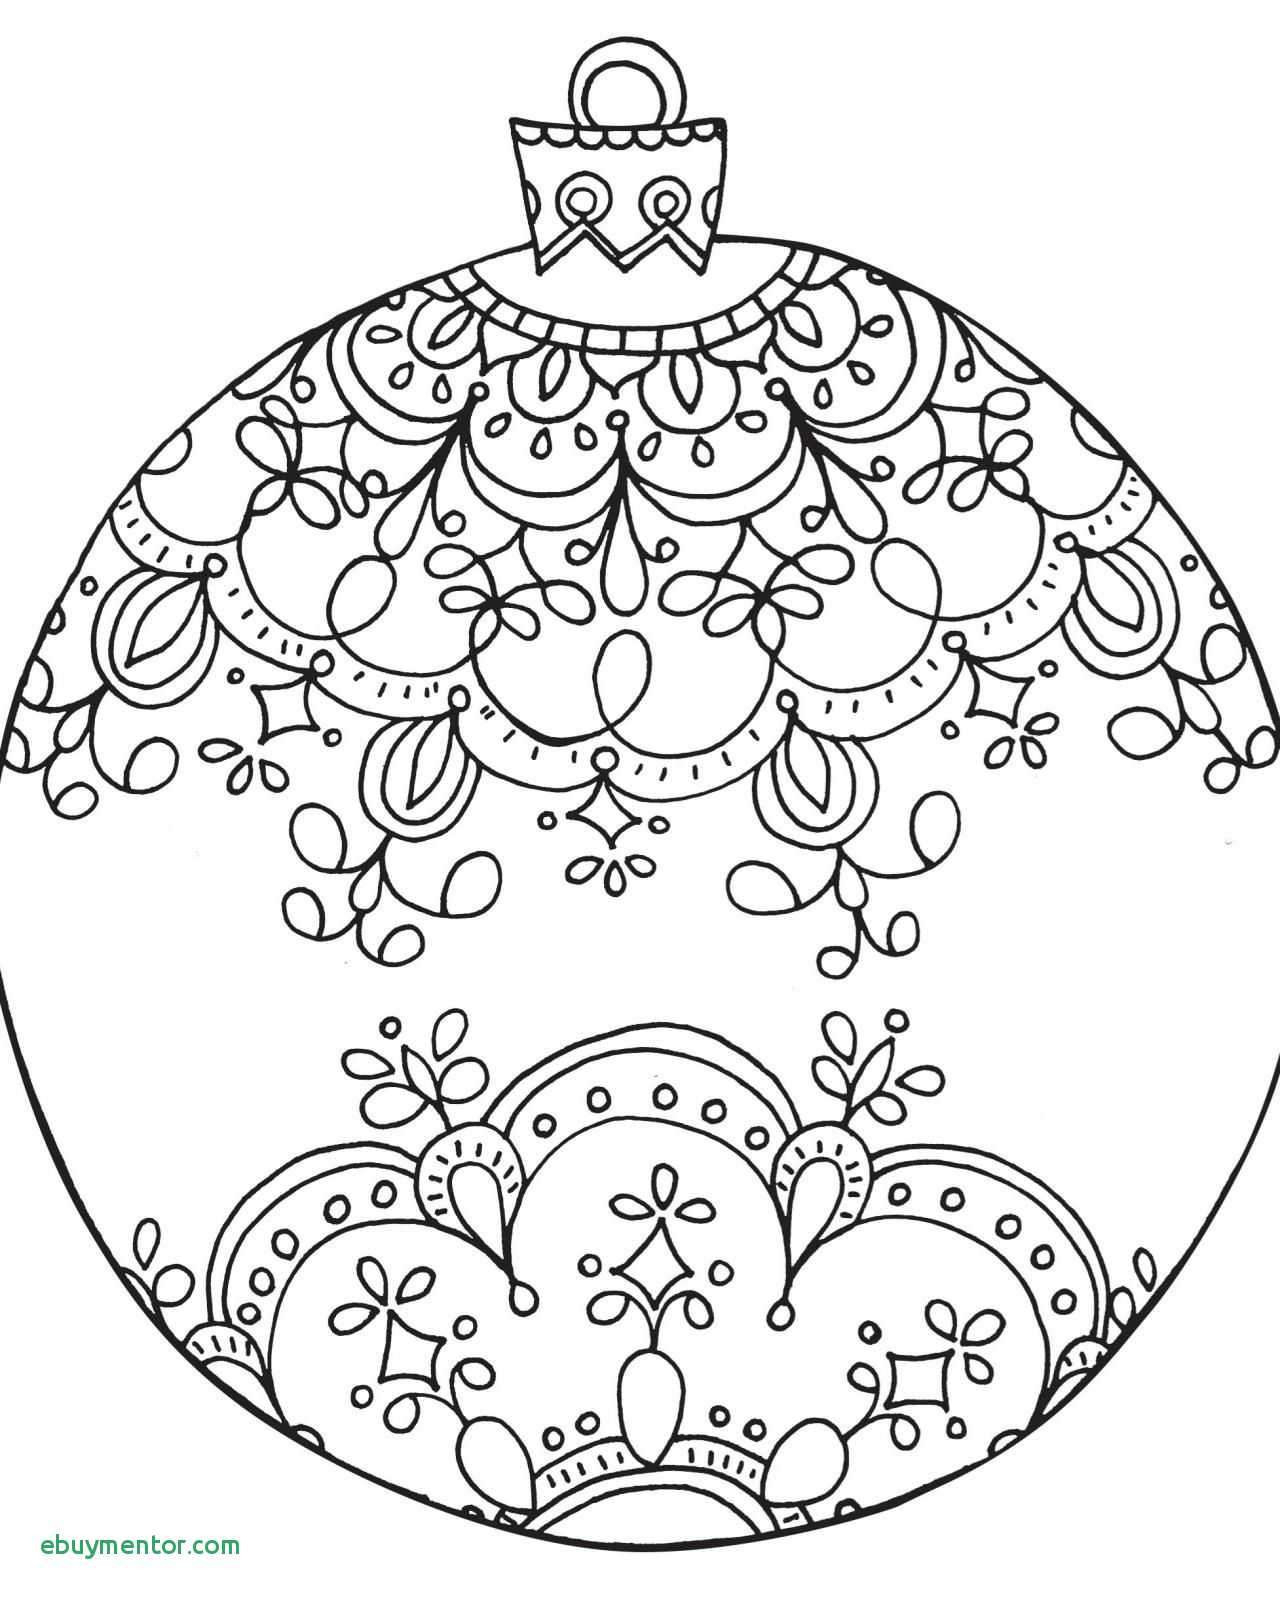 coloring pages christmas ornaments Collection-Christmas Decorations Free New Printable Coloring Pages Christmas Ornaments 4-i